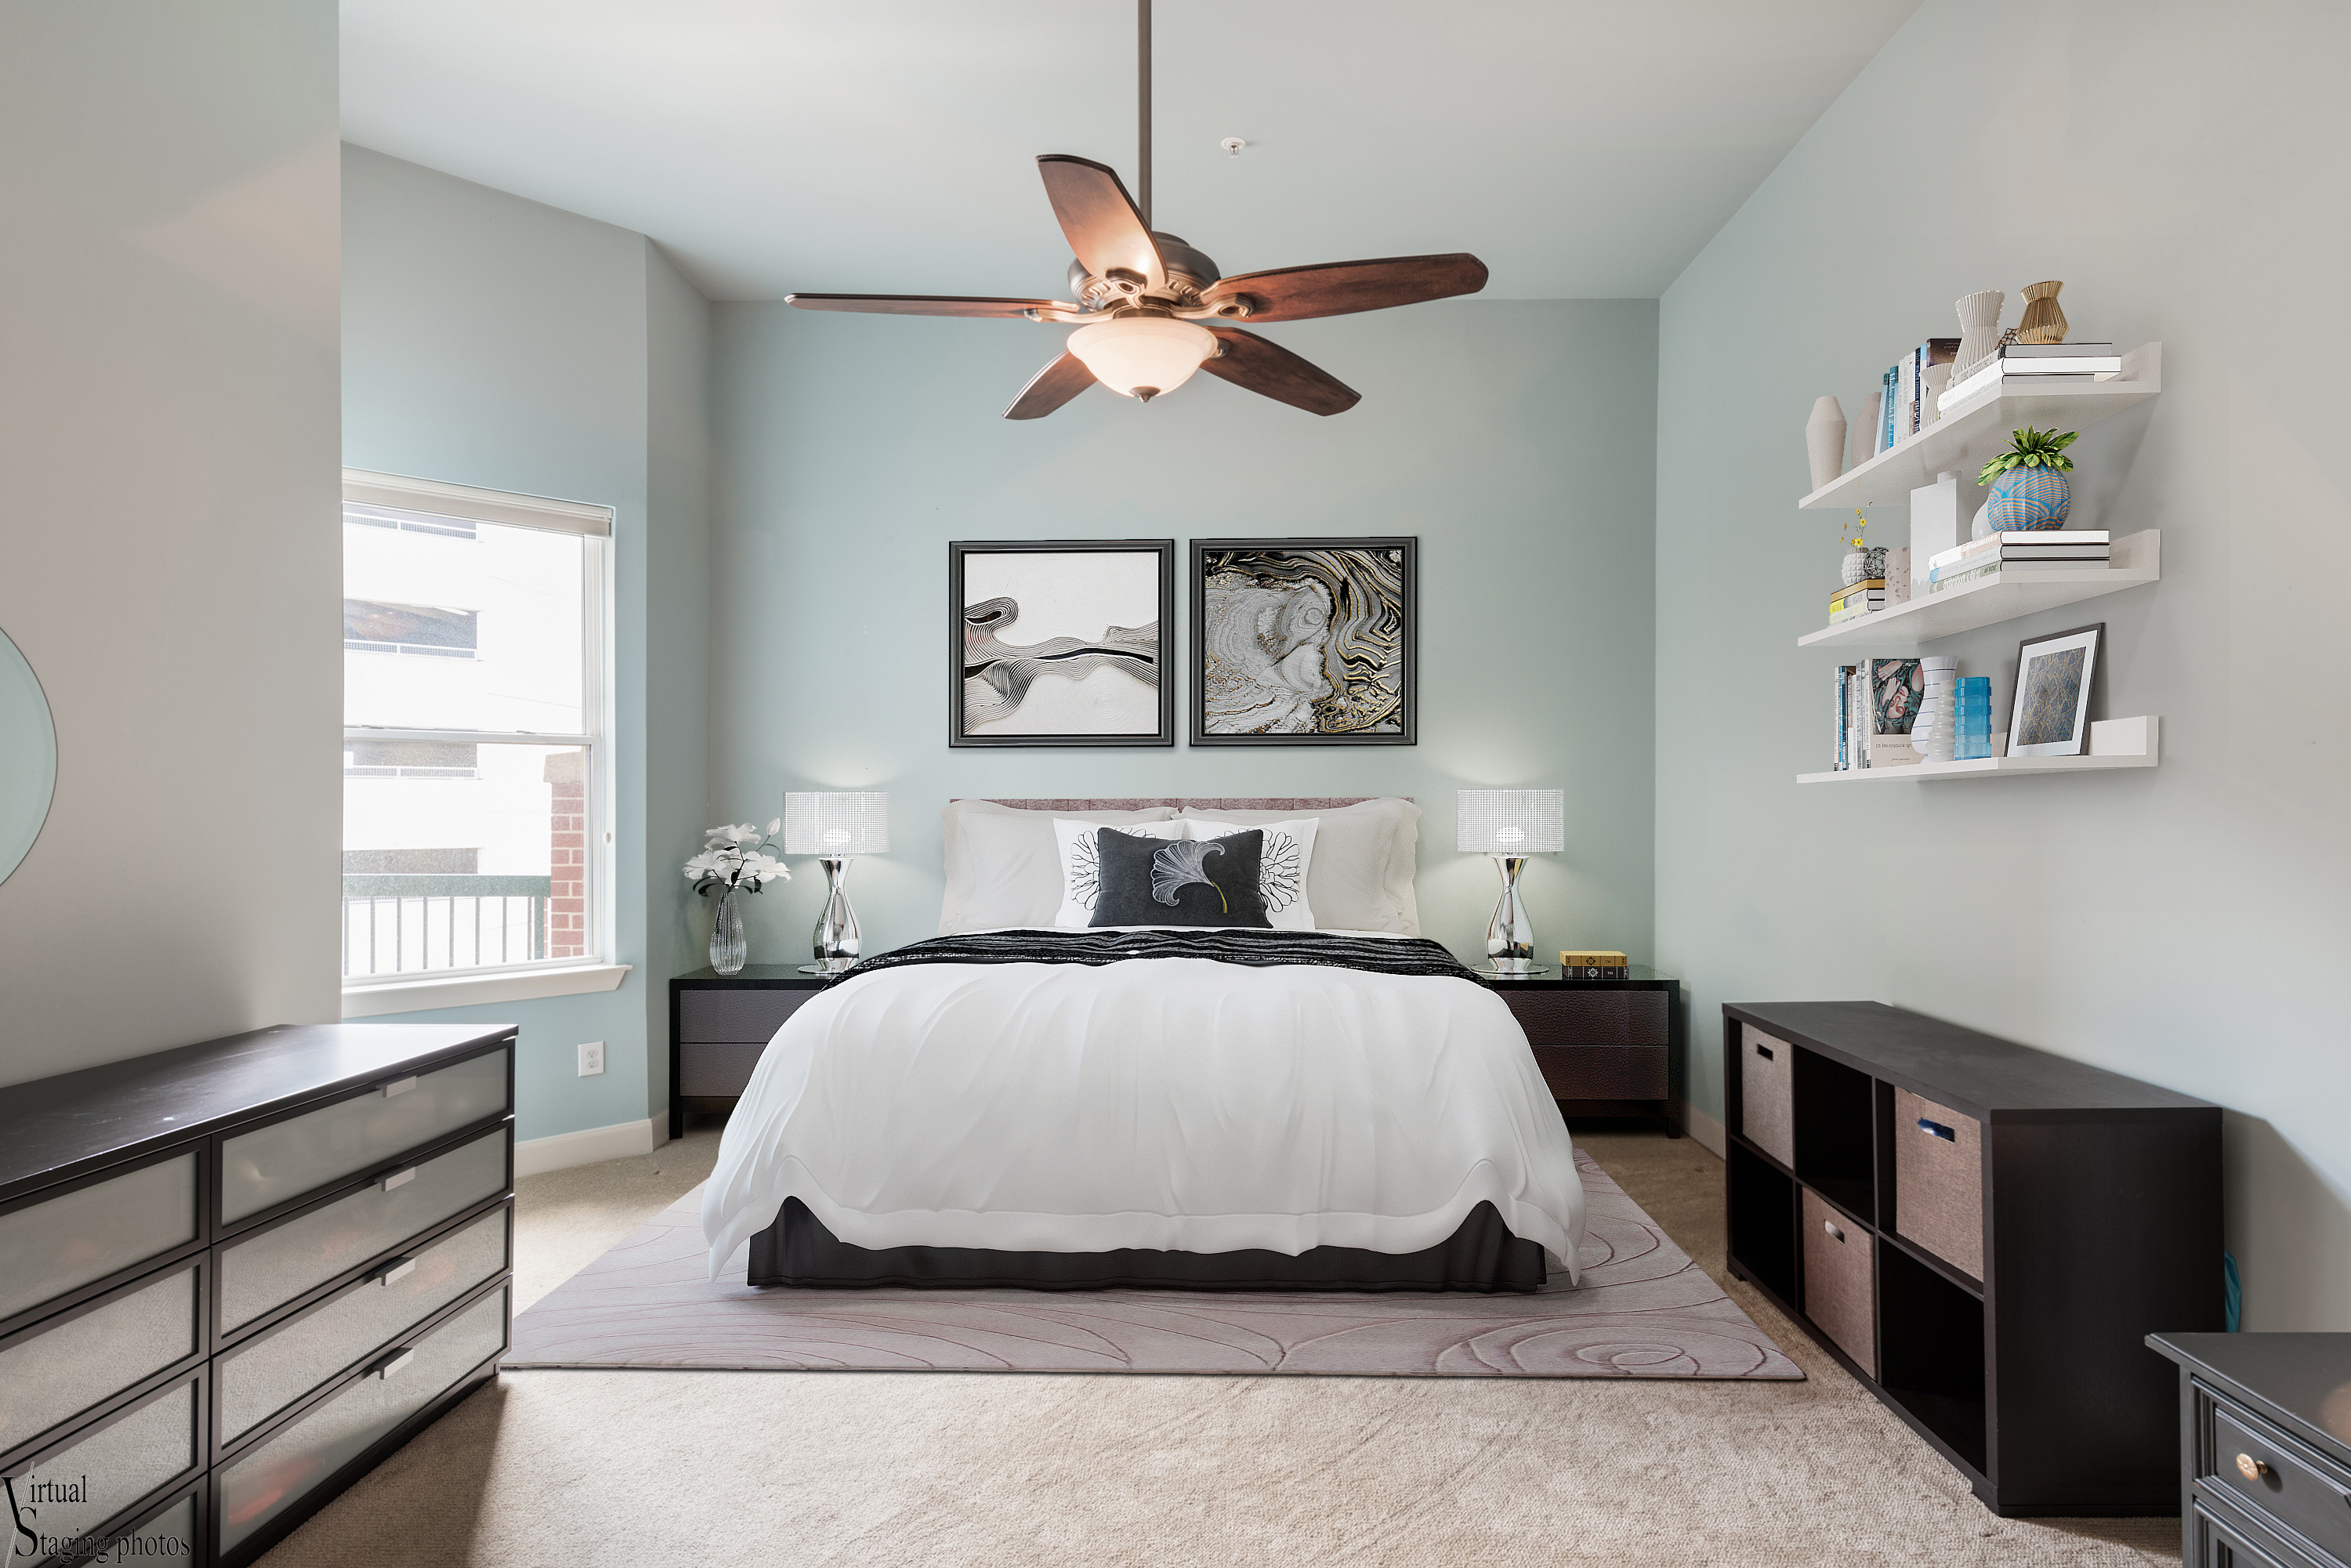 Staging A Bedroom - 7 Amazing Secrets To Improve Your Bedroom Look